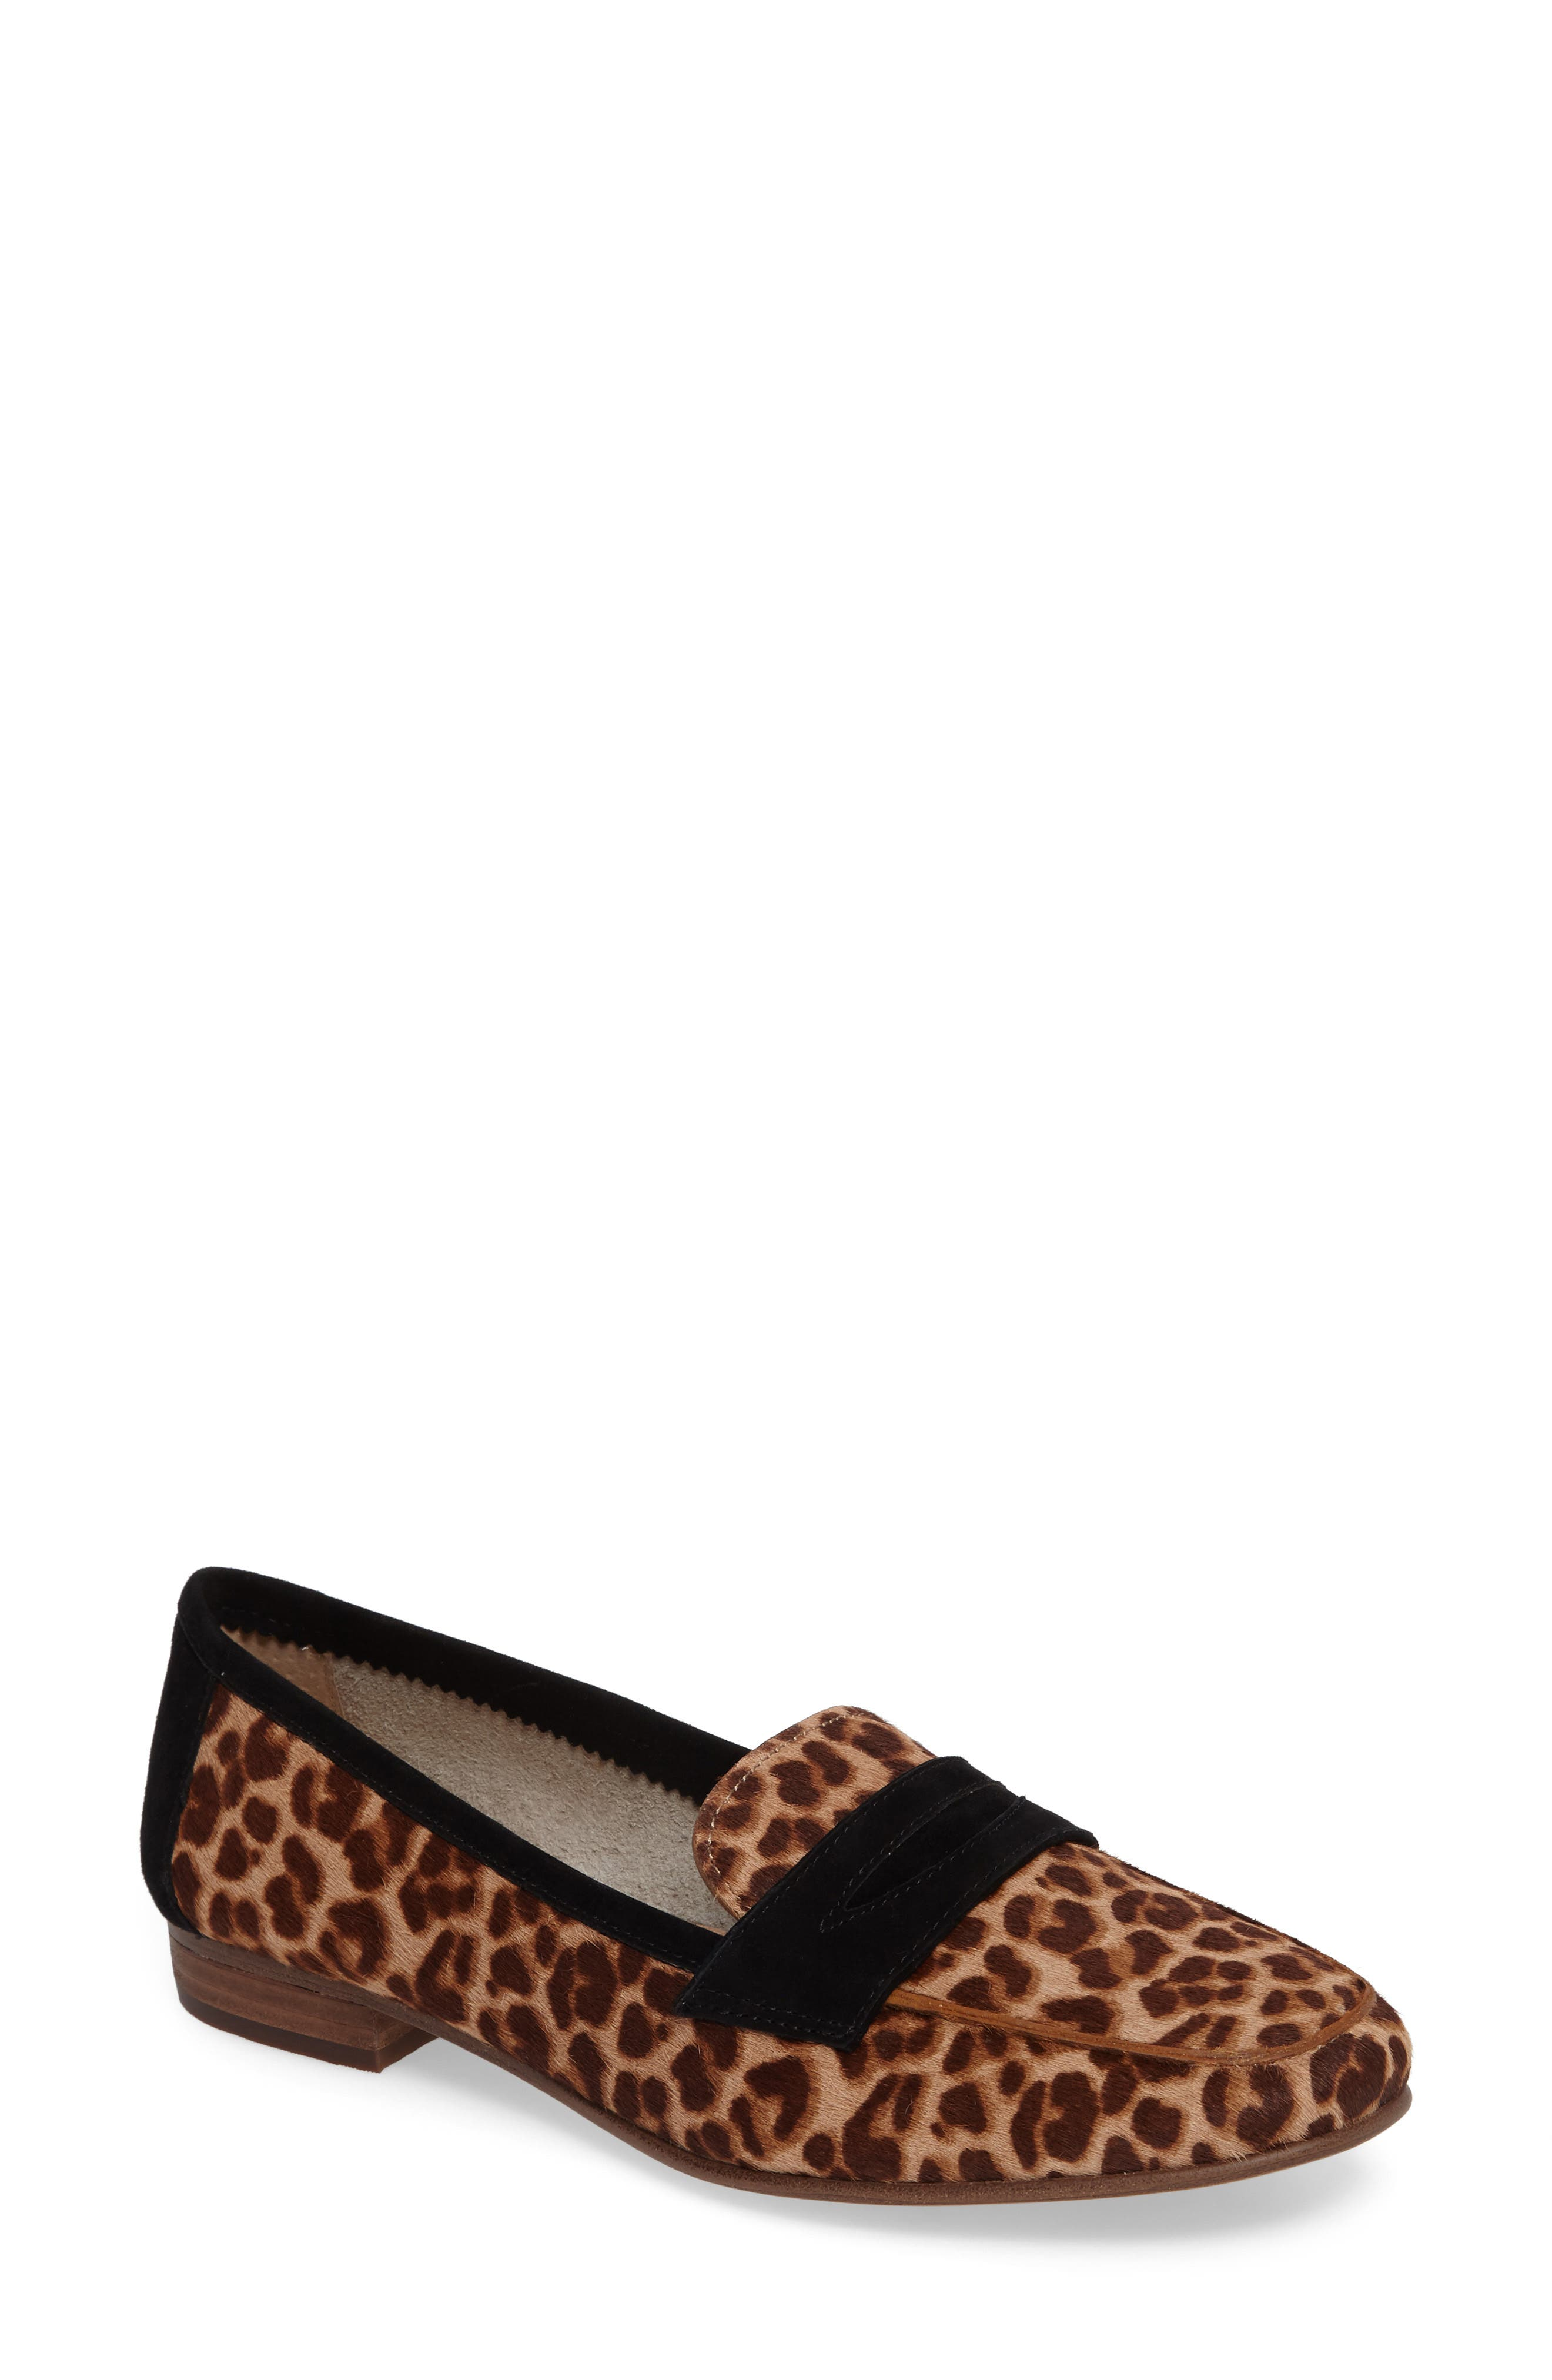 Elroy 2 Genuine Calf Hair Penny Loafer,                         Main,                         color, 201